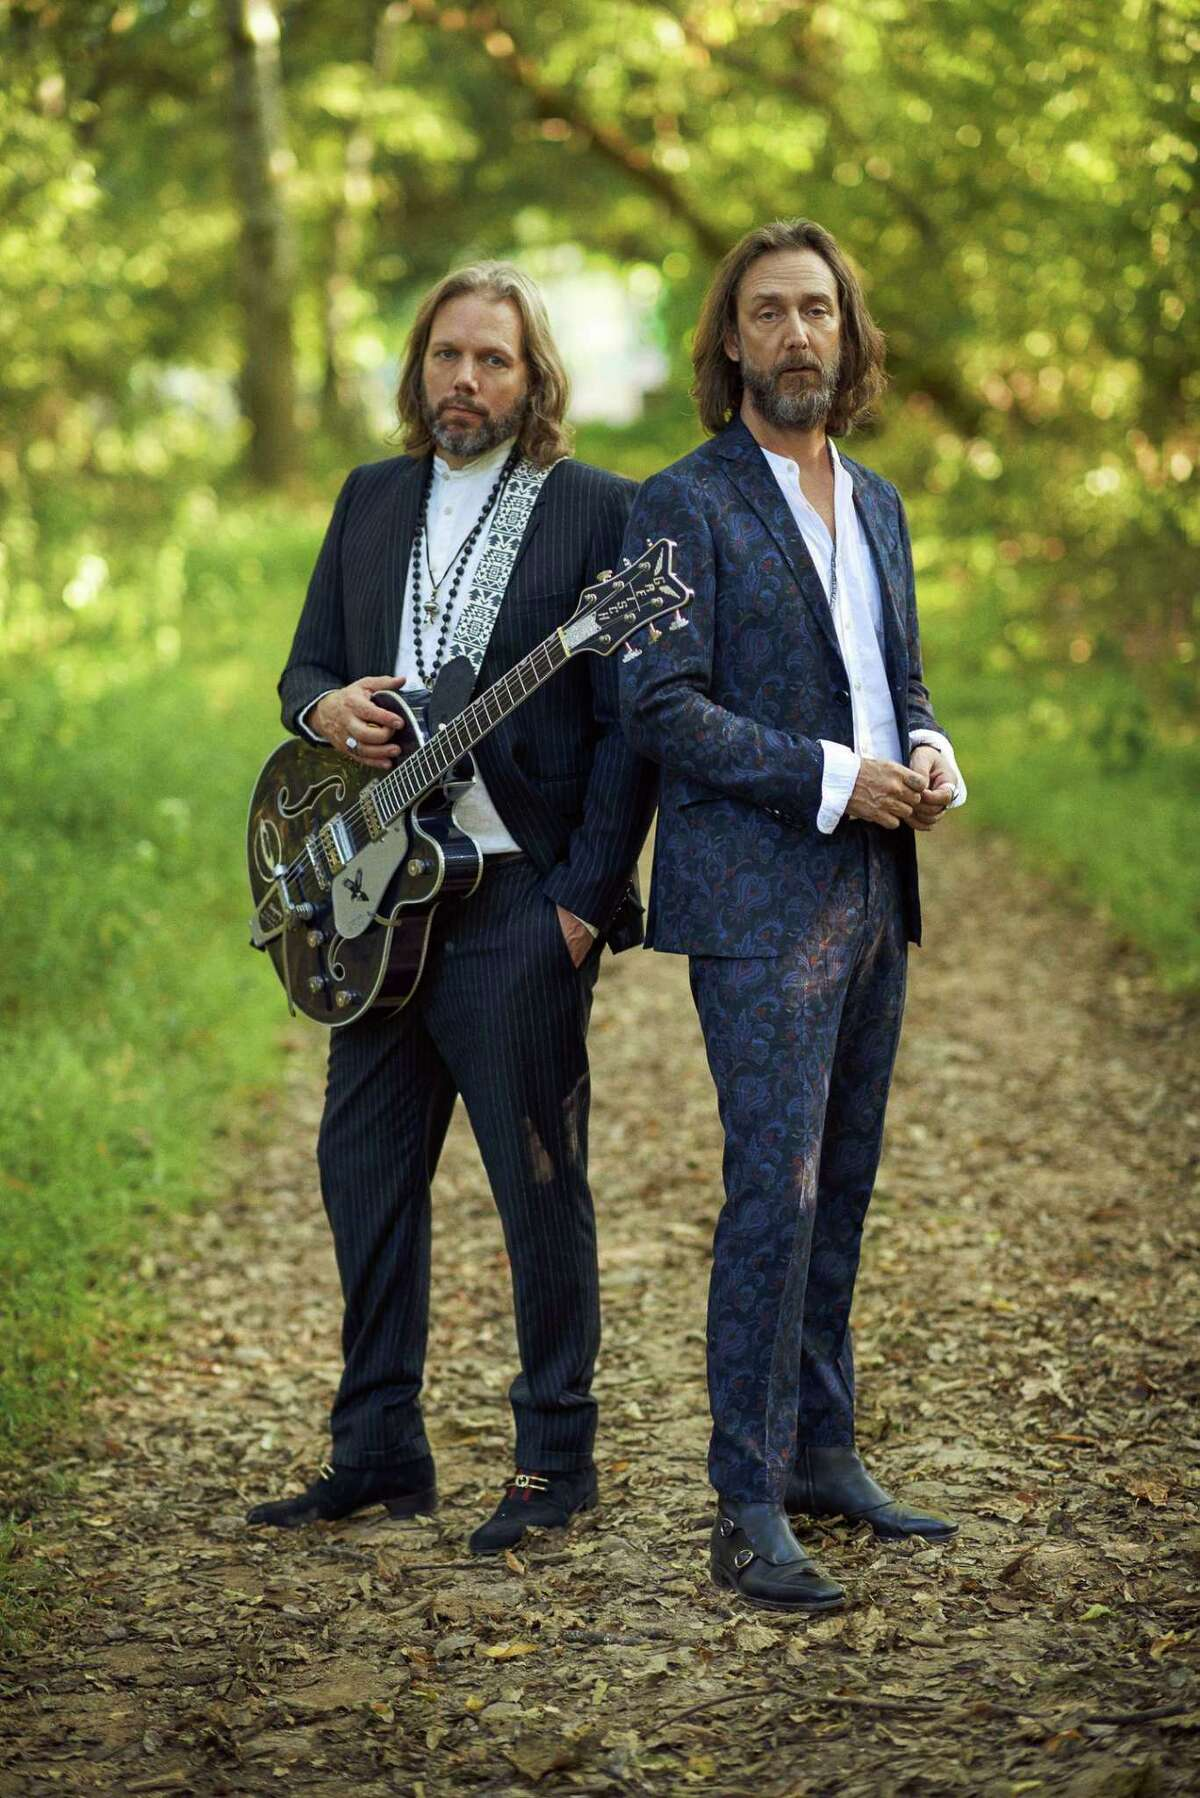 """Legendary rock band The Black Crowes announce the return of rock & roll with summer 2021 dates of their long-awaited """"Shake Your Money Maker"""" Tour, with special guests, Dirty Honey."""